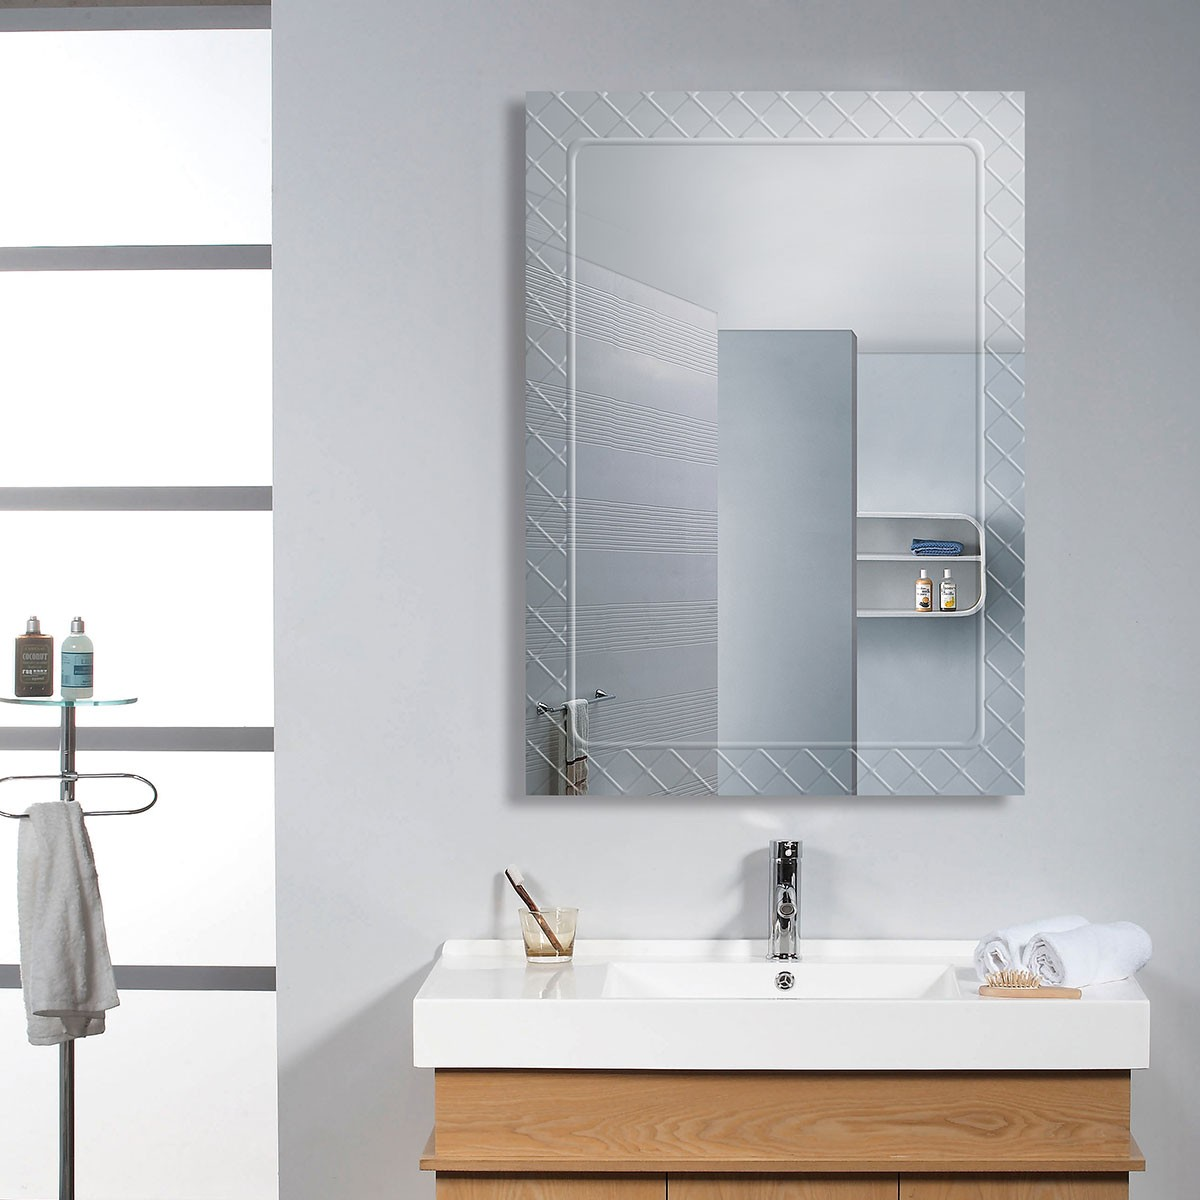 28 x 20 In. Wall-mounted Rectangle Bathroom Mirror (DK-OD-B083B)